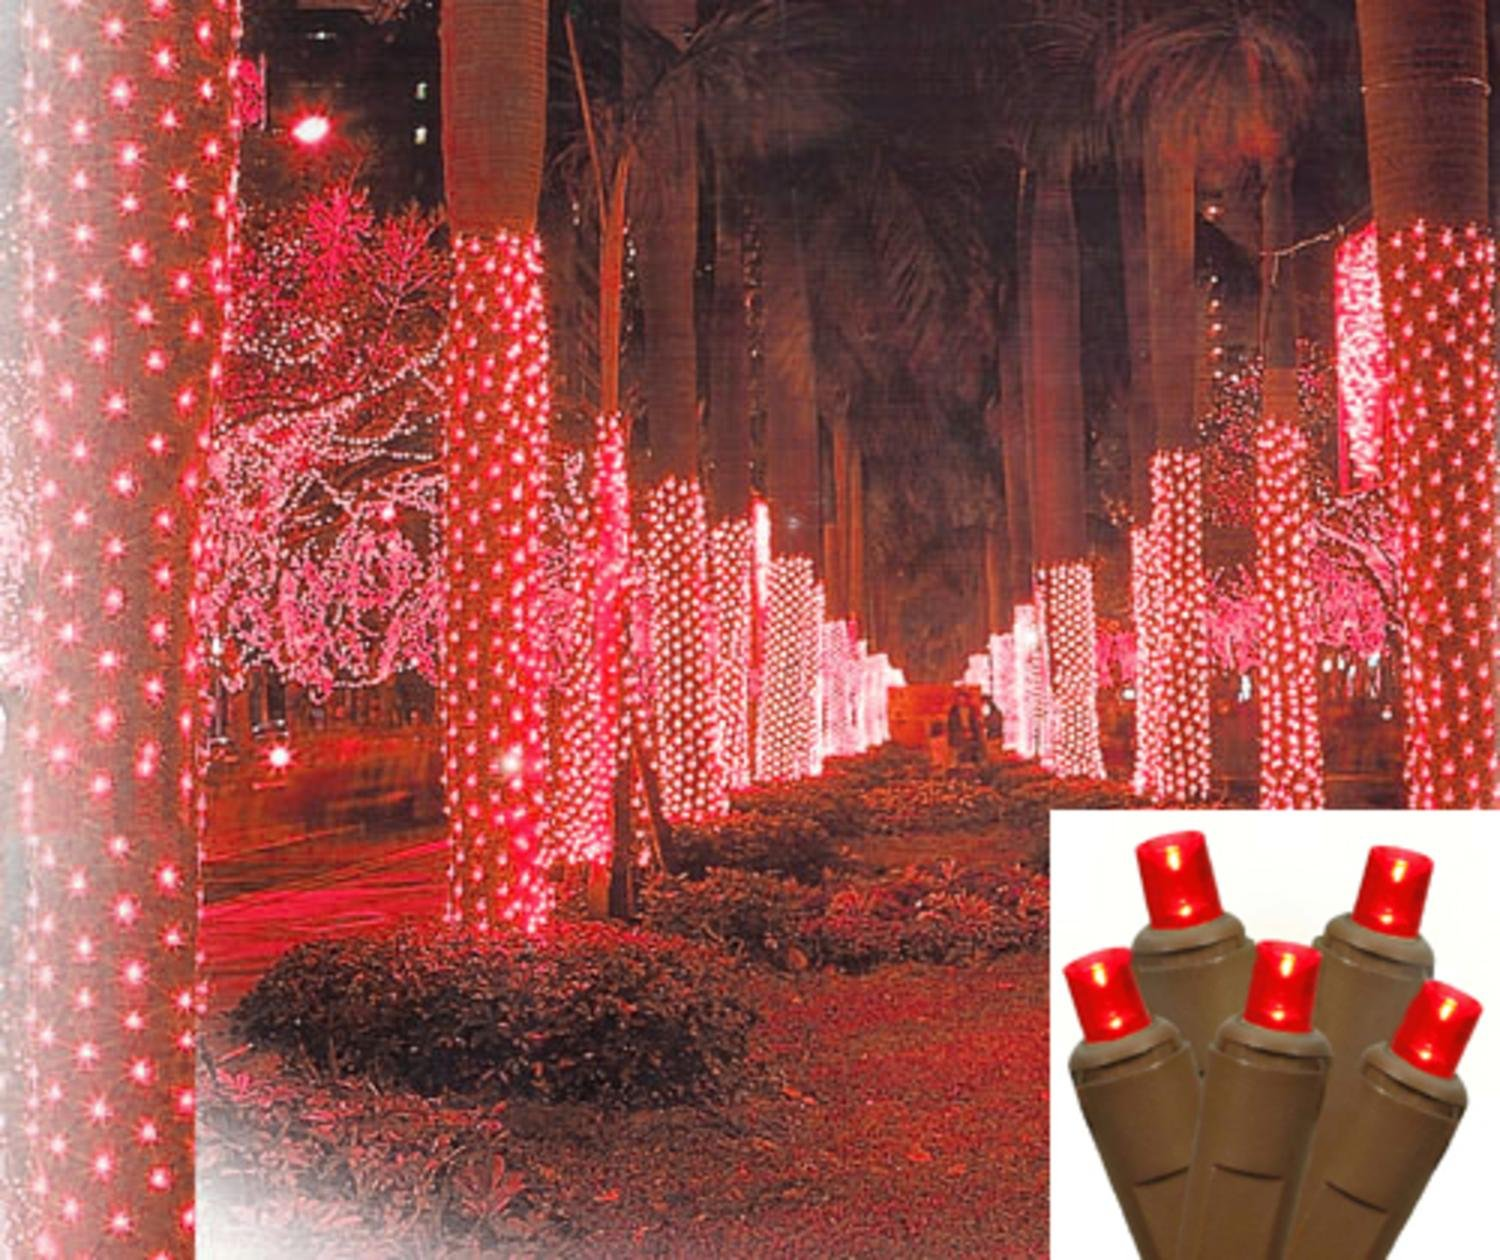 amazoncom 2 x 8 red led net style tree trunk wrap christmas lights brown wire string lights garden outdoor - Brown Wire Christmas Lights